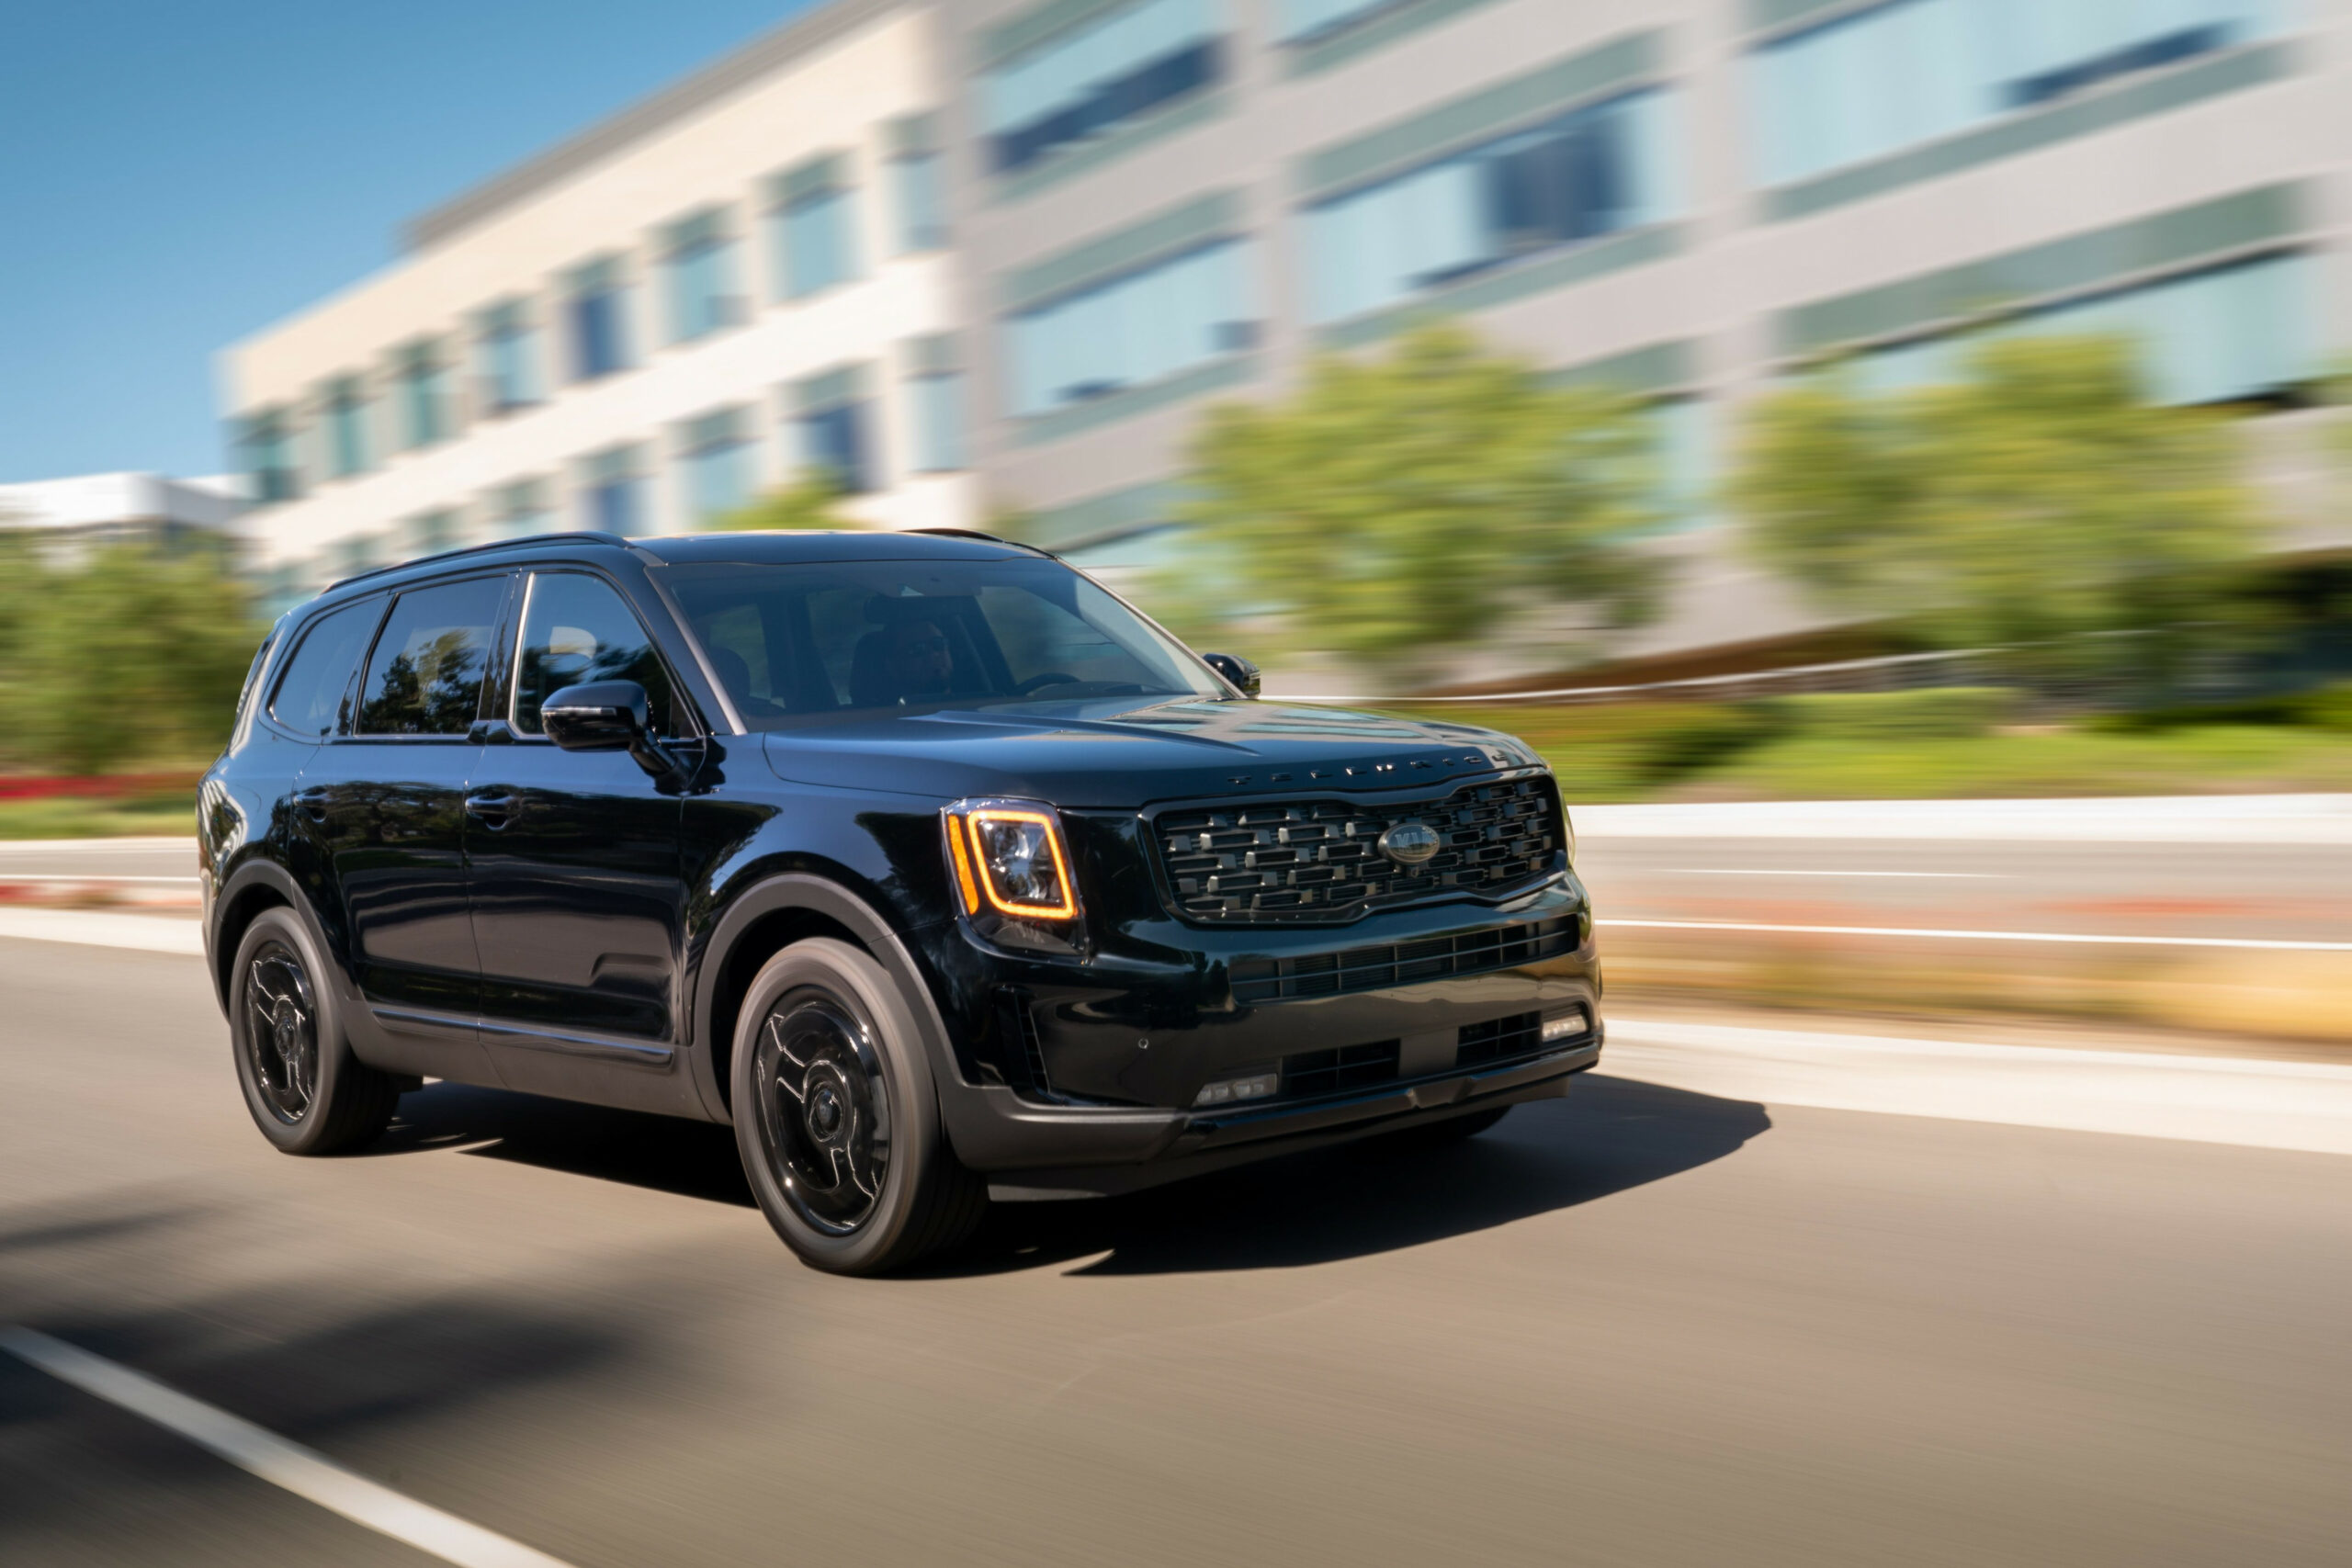 Redesign and Concept Kia Telluride 2022 For Sale